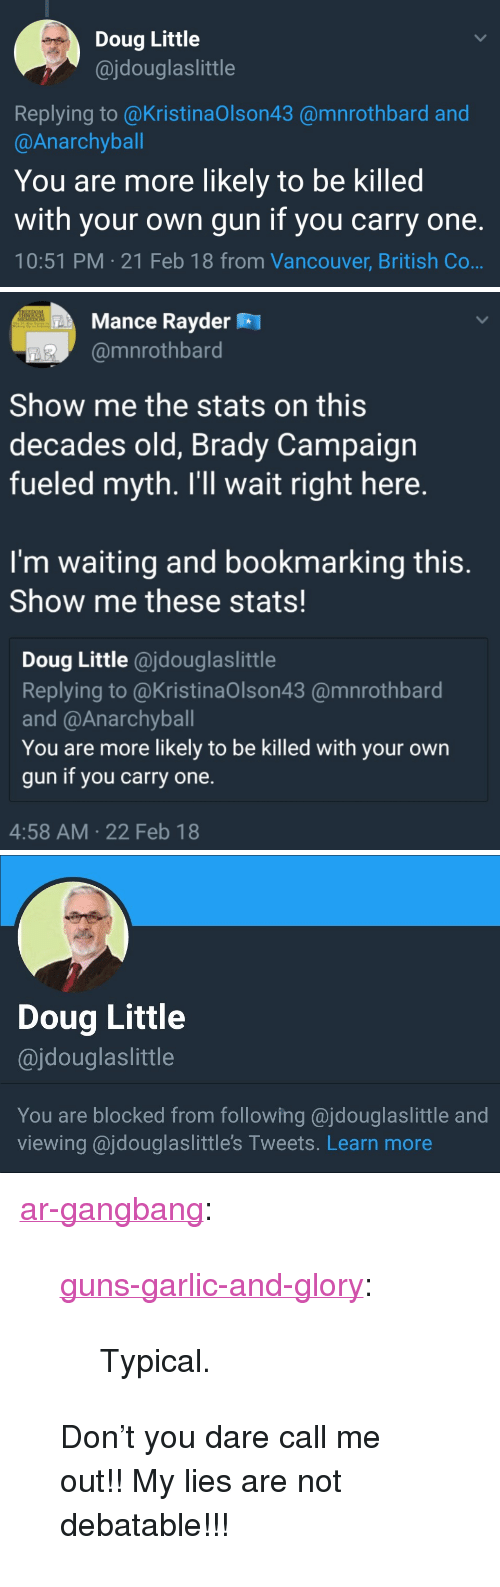 """Doug, Gangbang, and Guns: Doug Little  @jdouglaslittle  Replying to @KristinaOlson43 @mnrothbard and  @Anarchyball  You are more likely to be killed  with your own gun if you carry one.  10:51 PM 21 Feb 18 from Vancouver, British Co   Mance Rayder R  @mnrothbard  Show me the stats on this  decades old, Brady Campaign  fueled myth. I'll wait right here.  I'm waiting and bookmarking this.  Show me these stats!  Doug Little @jdouglaslittle  Replying to @KristinaOlson43 @mnrothbard  and @Anarchyball  You are more likely to be killed with your own  gun if you carry one.  4:58 AM 22 Feb 18   Doug Little  @jdouglaslittle  You are blocked from following @jdouglaslittle and  viewing ajdouglaslittle's Tweets. Learn more <p><a href=""""https://ar-gangbang.tumblr.com/post/171207663626/guns-garlic-and-glory-typical-dont-you"""" class=""""tumblr_blog"""">ar-gangbang</a>:</p>  <blockquote><p><a href=""""https://guns-garlic-and-glory.tumblr.com/post/171207497923/typical"""" class=""""tumblr_blog"""">guns-garlic-and-glory</a>:</p>  <blockquote><p>Typical.  </p></blockquote>  <p>Don't you dare call me out!! My lies are not debatable!!! </p></blockquote>"""